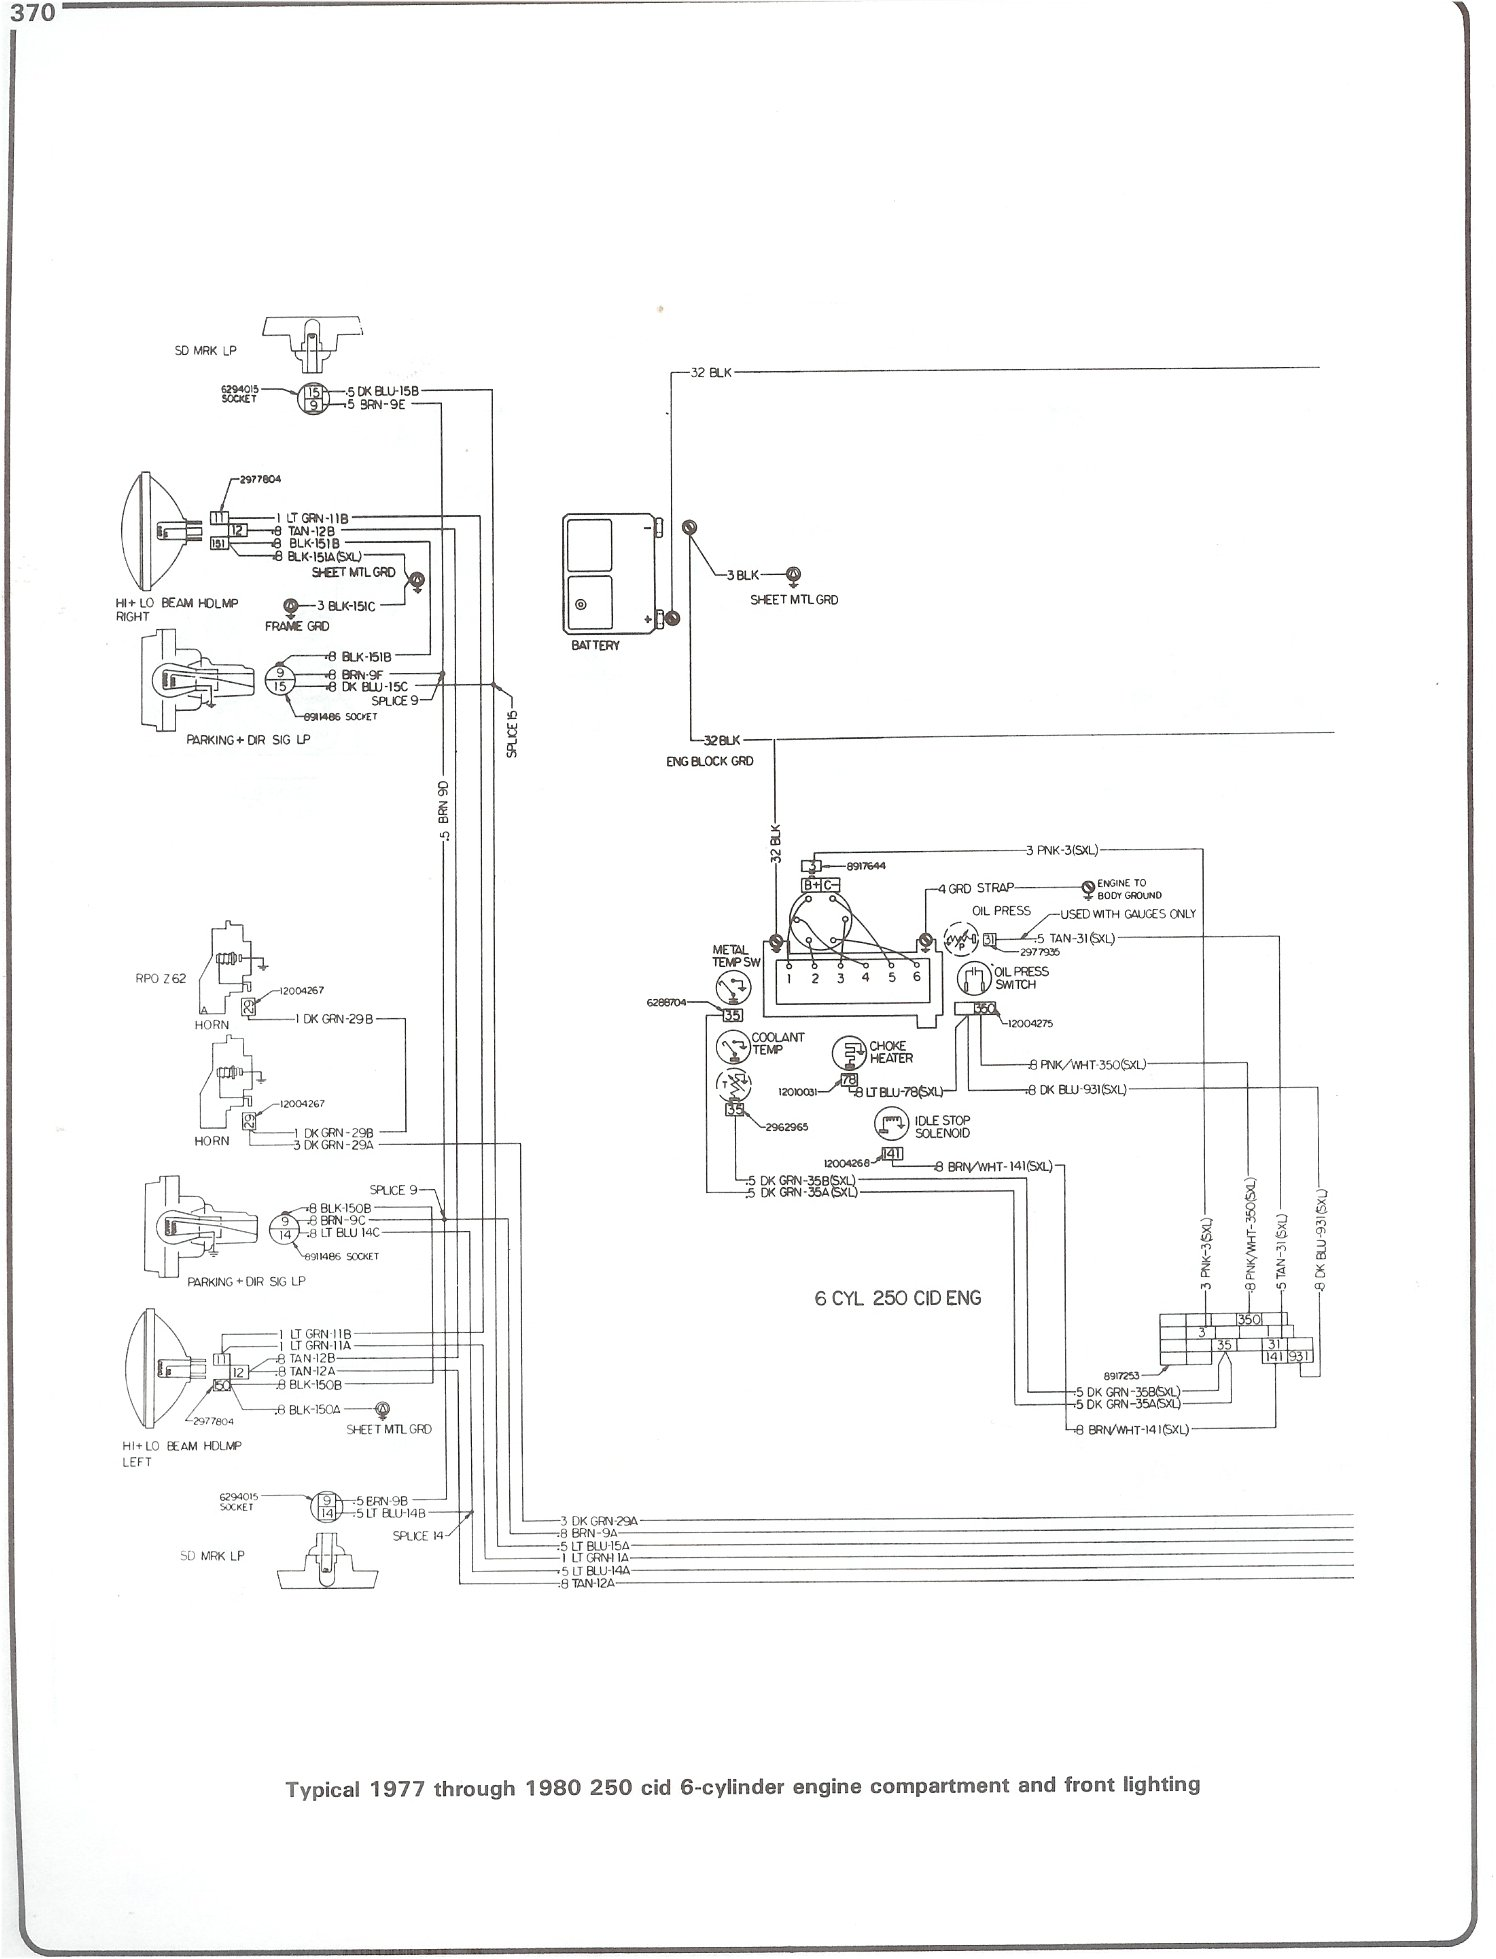 2000 chevy silverado ke light switch wiring diagram basic wiring rh rnetcomputer co 2002 Silverado Wiring Diagram 2009 Chevy Silverado Wiring Diagram